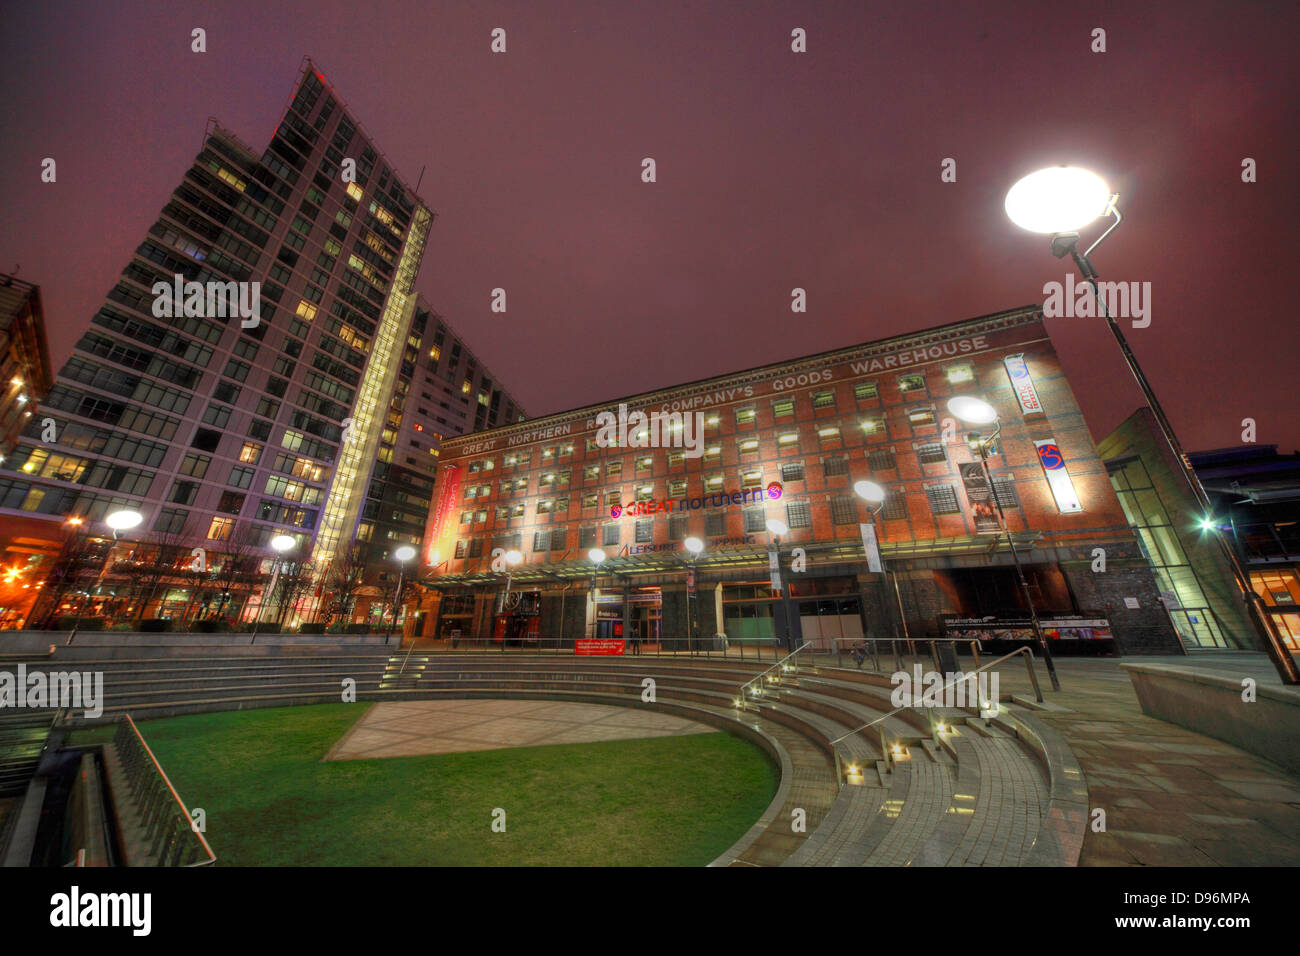 Manchester,Great,Northern,Railway,Warehouse,entertainment,complex,at,dusk,night,shot,nightshot,NW,England,UK,tripod,evening,in,the,inthe,gotonysmith,gradeII,grade,II,grade2,listed,Deansgate,peter,st,street,red,blue,brick,Great,Northern,Railway,Companys,Goods,Warehouse,wide,angle,blue,hour,bluehour,development,Capital,&,Regional,and,as,of,March,2013,comprises,an,AMC,cinema,a,casino,a,bowling,alley,bars,a,Lifestyle,Fitness,gym,and,a,multi-storey,car,park,operated,by,National,Car,Parks,Mancester,Buy Pictures of,Buy Images Of